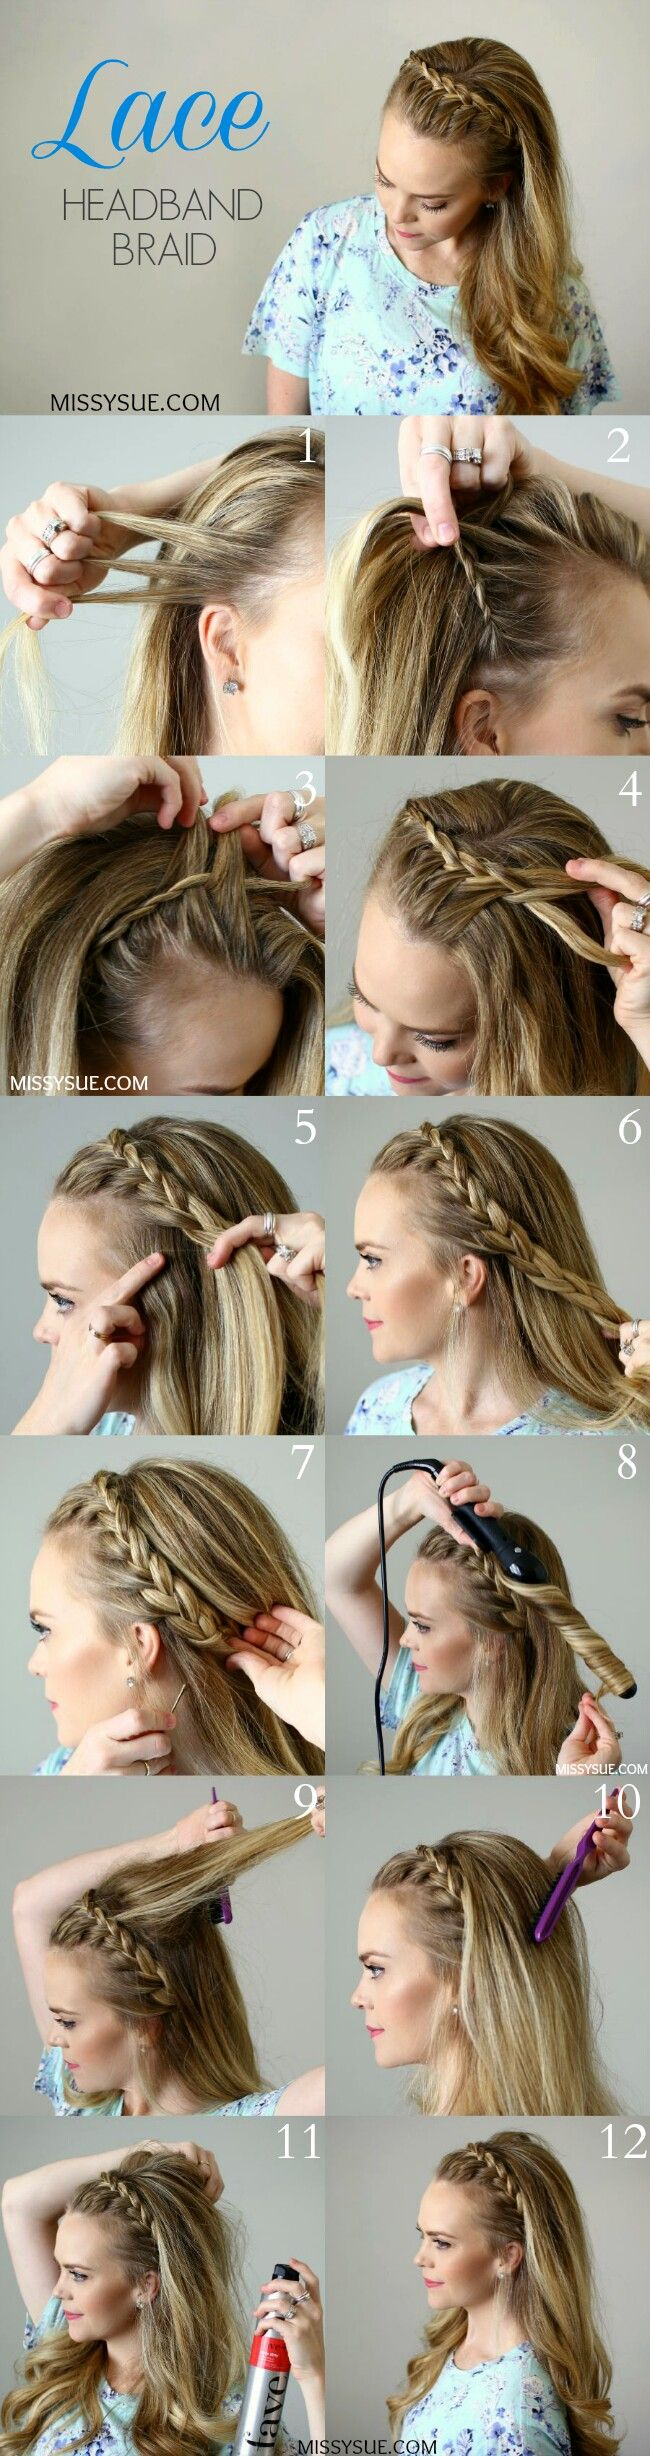 Lace head band braid by messy sue nice hair pinterest head